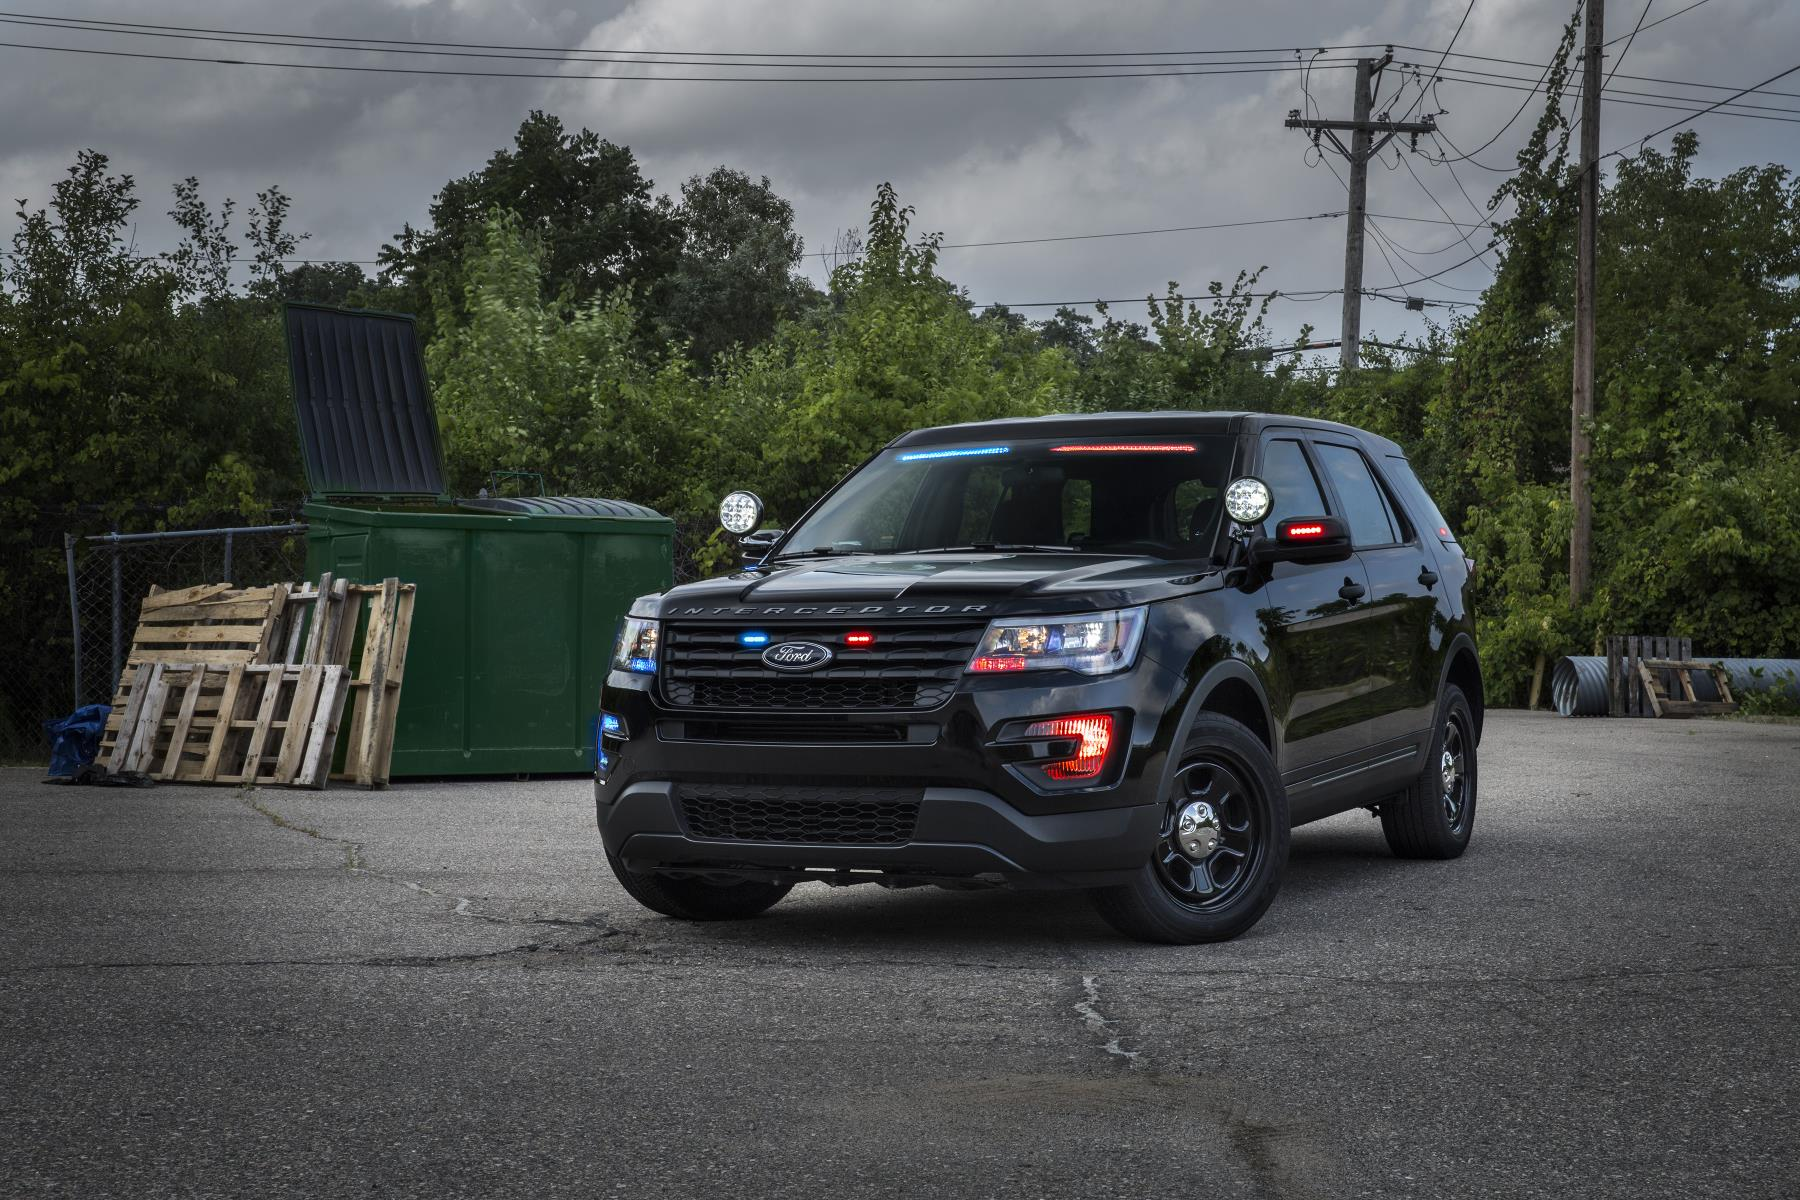 ford police interceptor utility gets no profile visor light bar 106311. Cars Review. Best American Auto & Cars Review